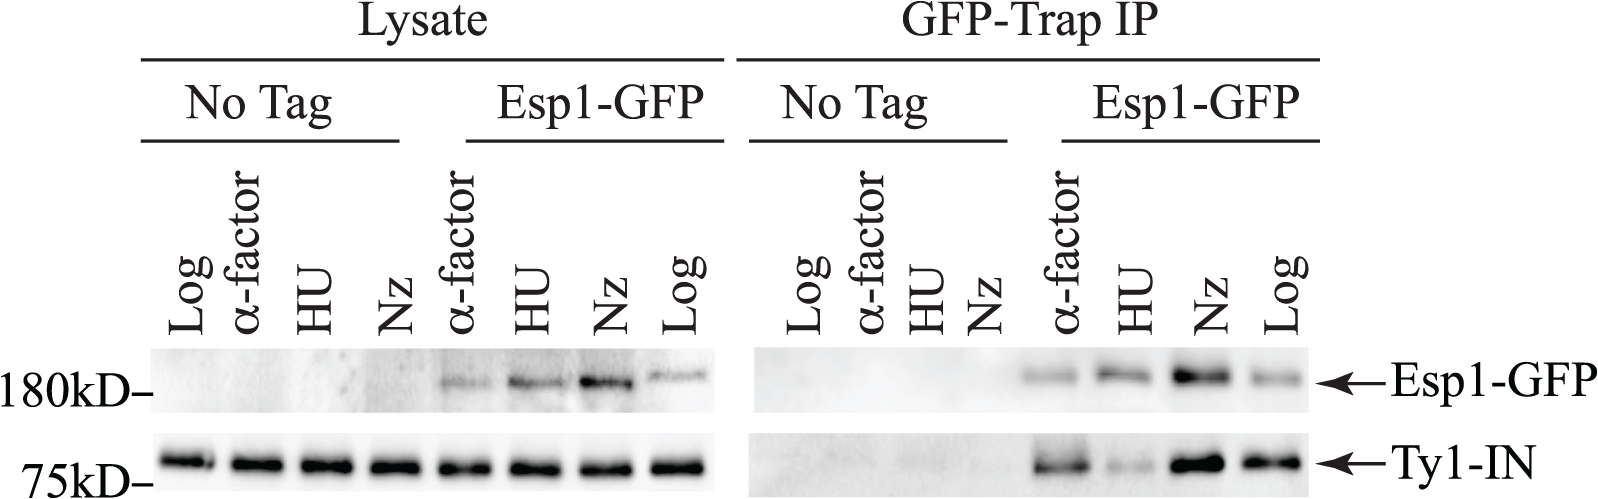 Esp1 interacts with Ty1-IN in G1 and G2/M phase cells.